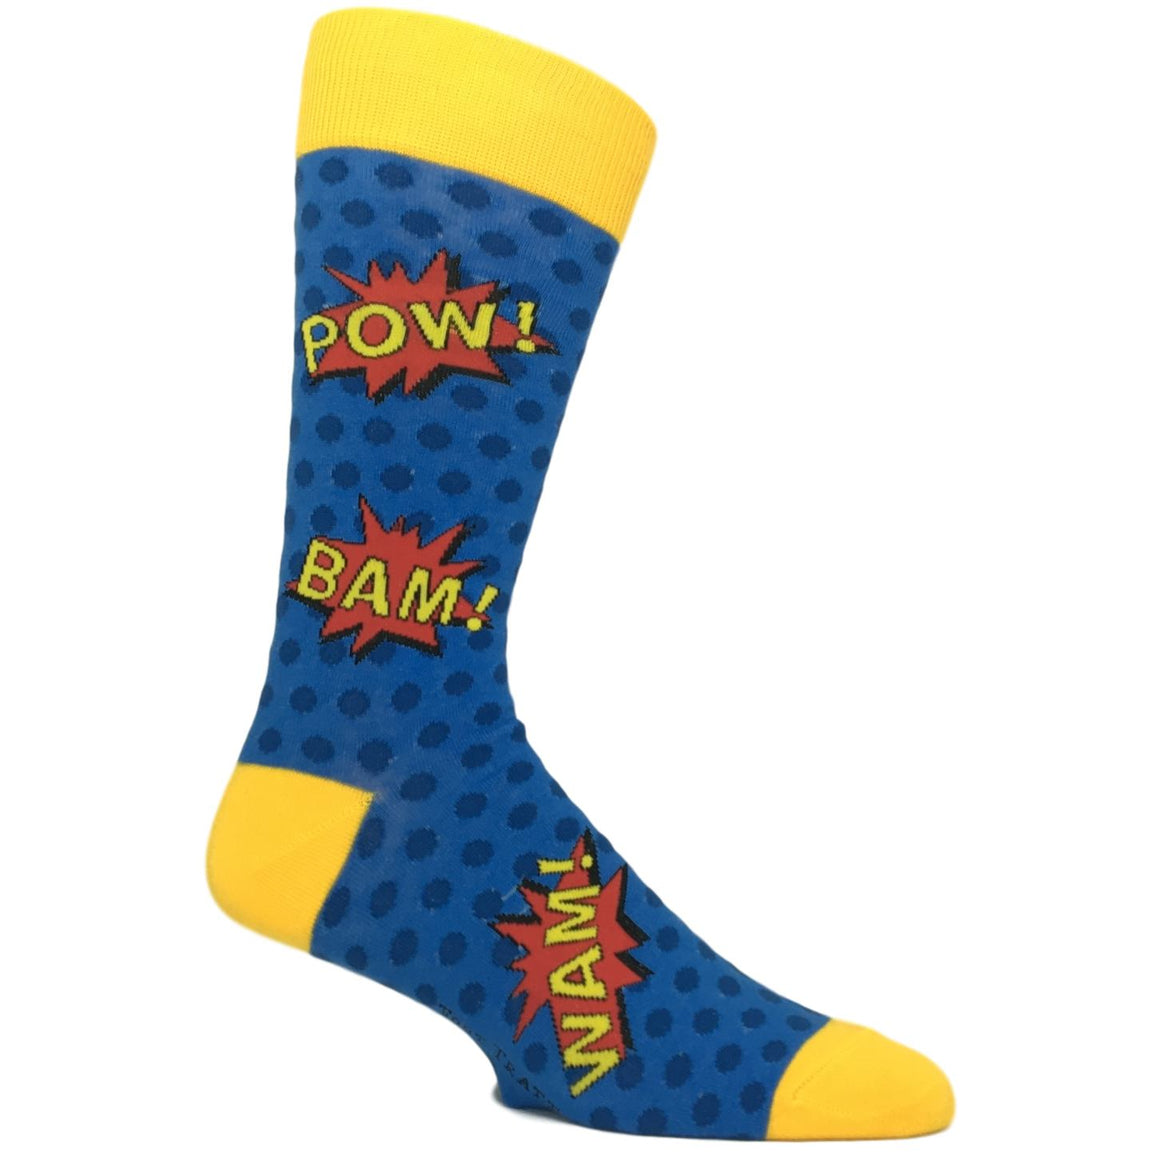 Boom! Bam! Comic Socks by Foot Traffic - The Sock Spot